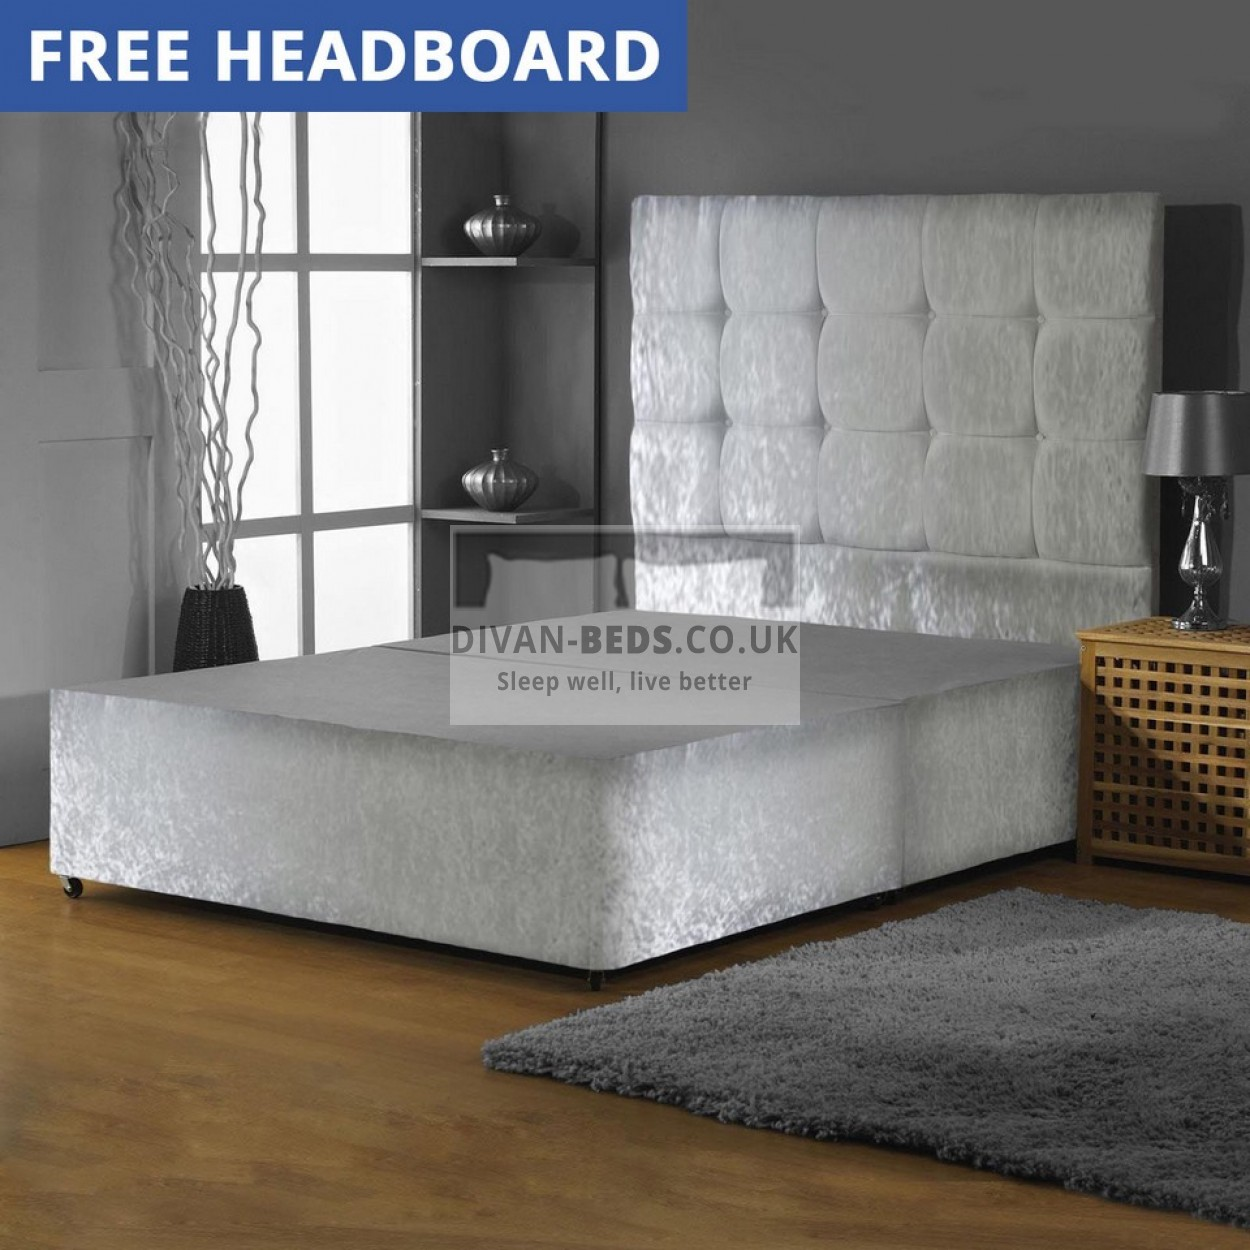 Crushed velvet divan bed base with high buttoned headboard for Divan bed quick delivery